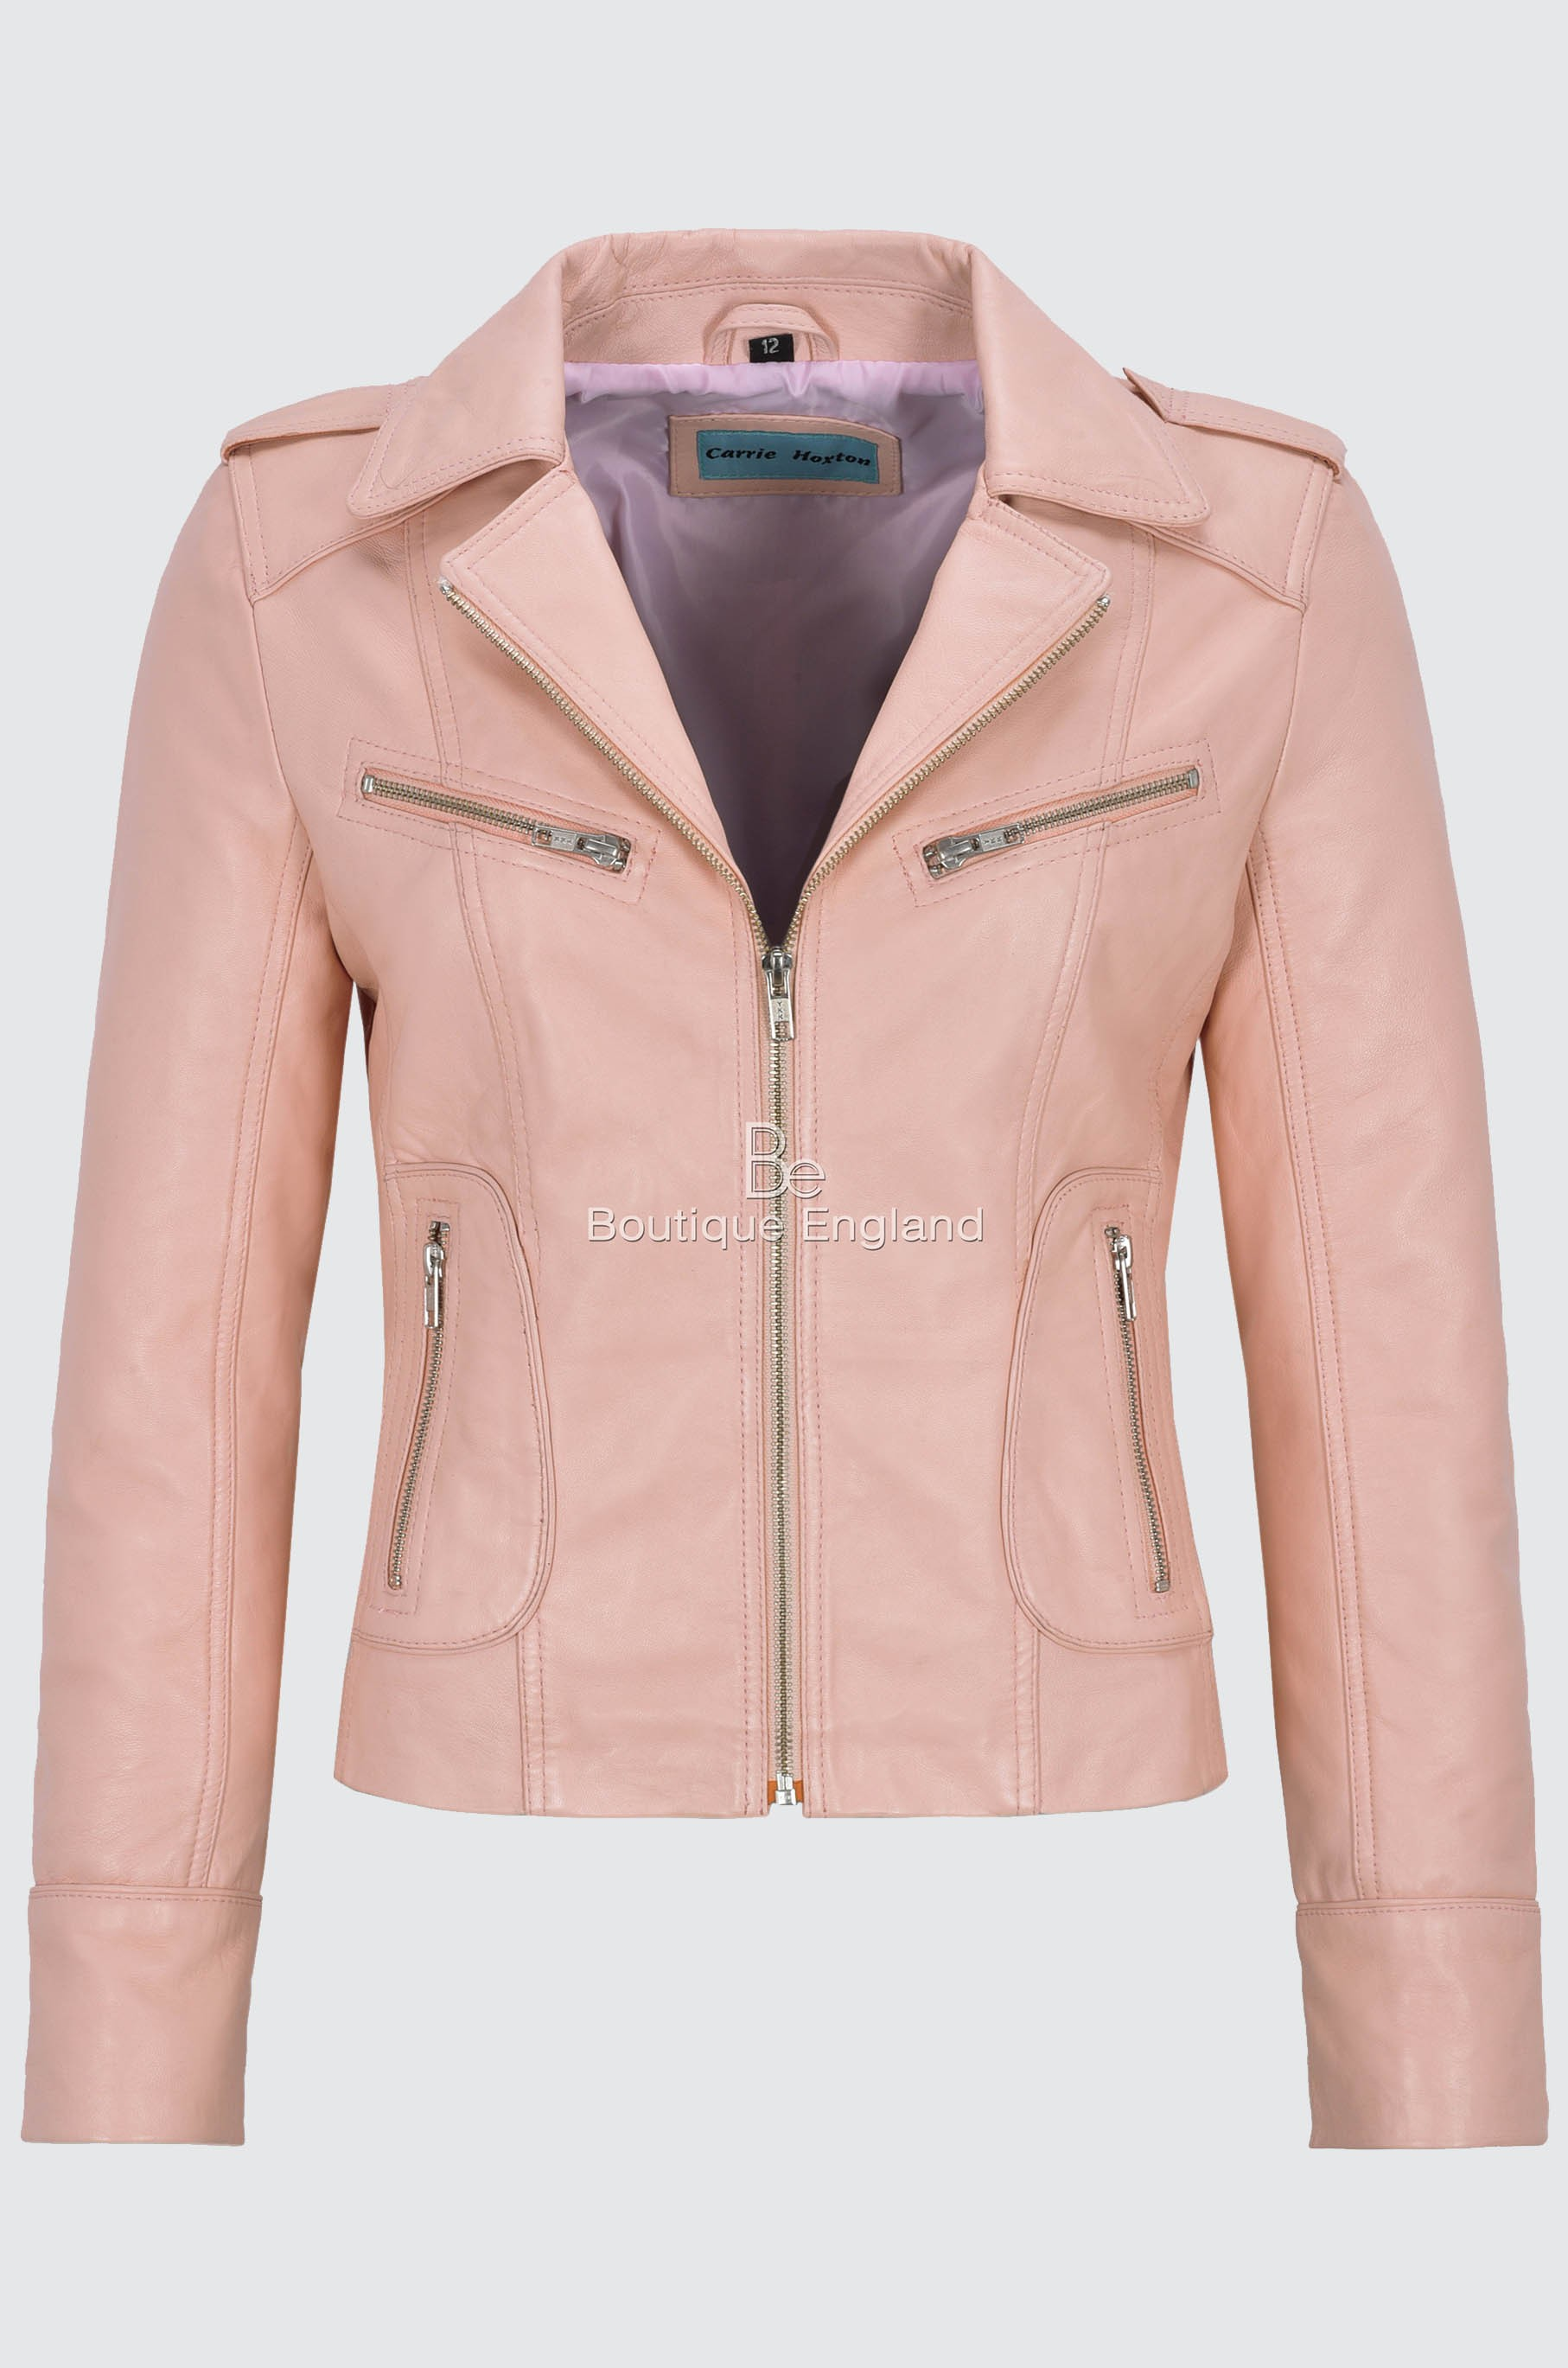 91d738127b53 Ladies Leather Jacket